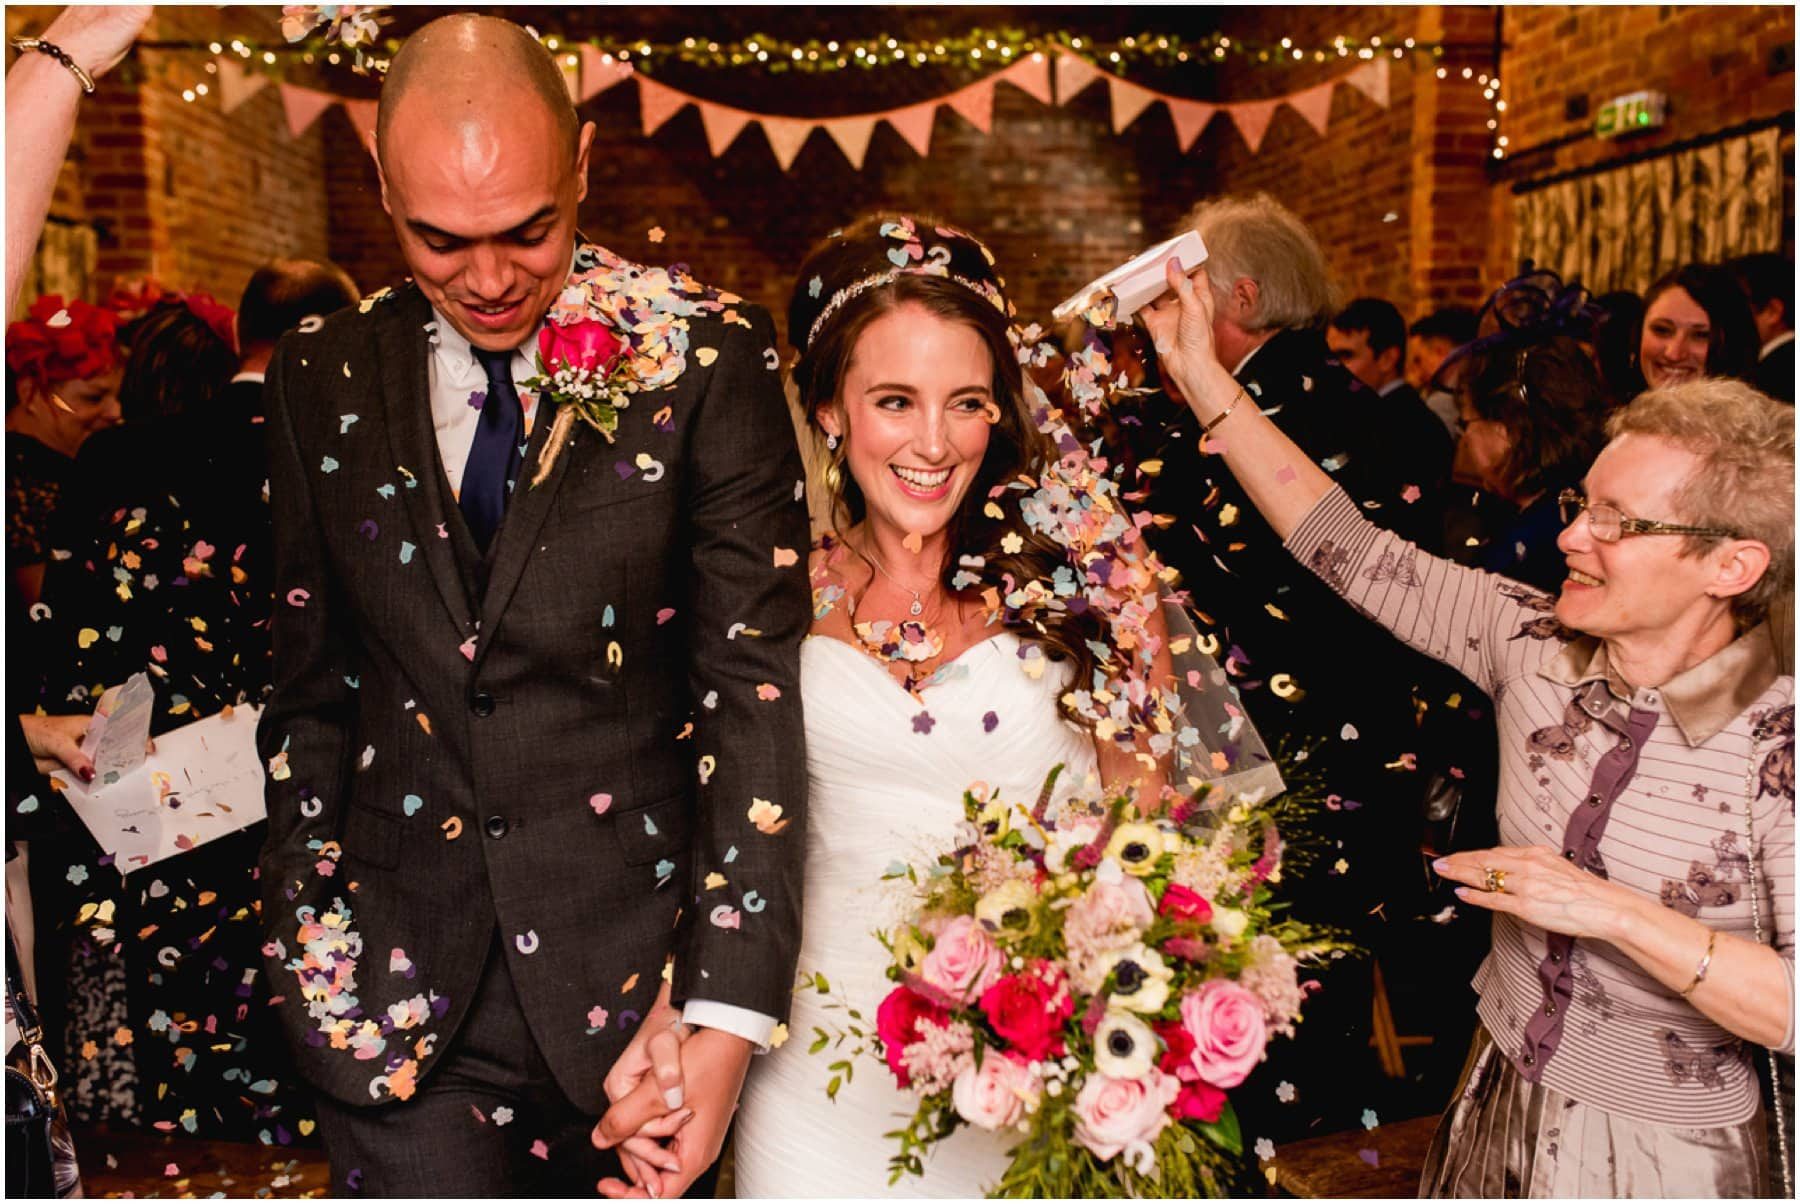 Sarah and Karls' Springtime Wedding at Curradine Barns in Worcestershire by Wedding Photographer Lisa Carpenter Photography, Sutton Coldfield, Birmingham and West Midlands Wedding Photographer shooting cool, quirky and contemporary wedding photos nationwide.